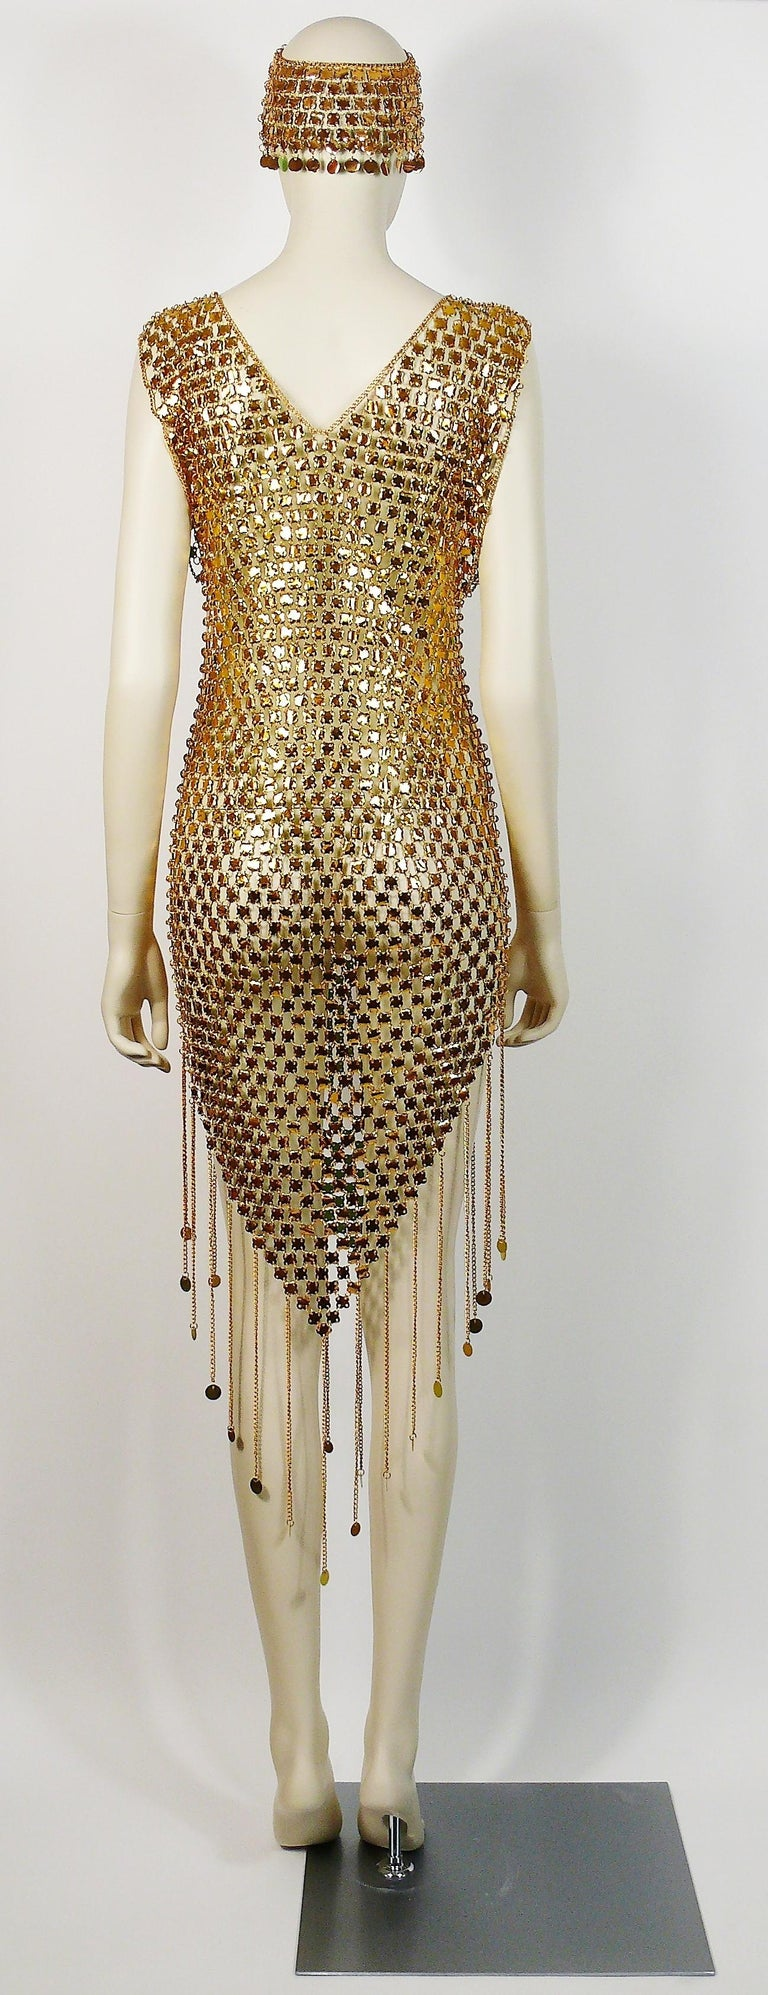 1970s Gold Toned Rhodhoid Chainmail Fringed Dress and Hat For Sale 2